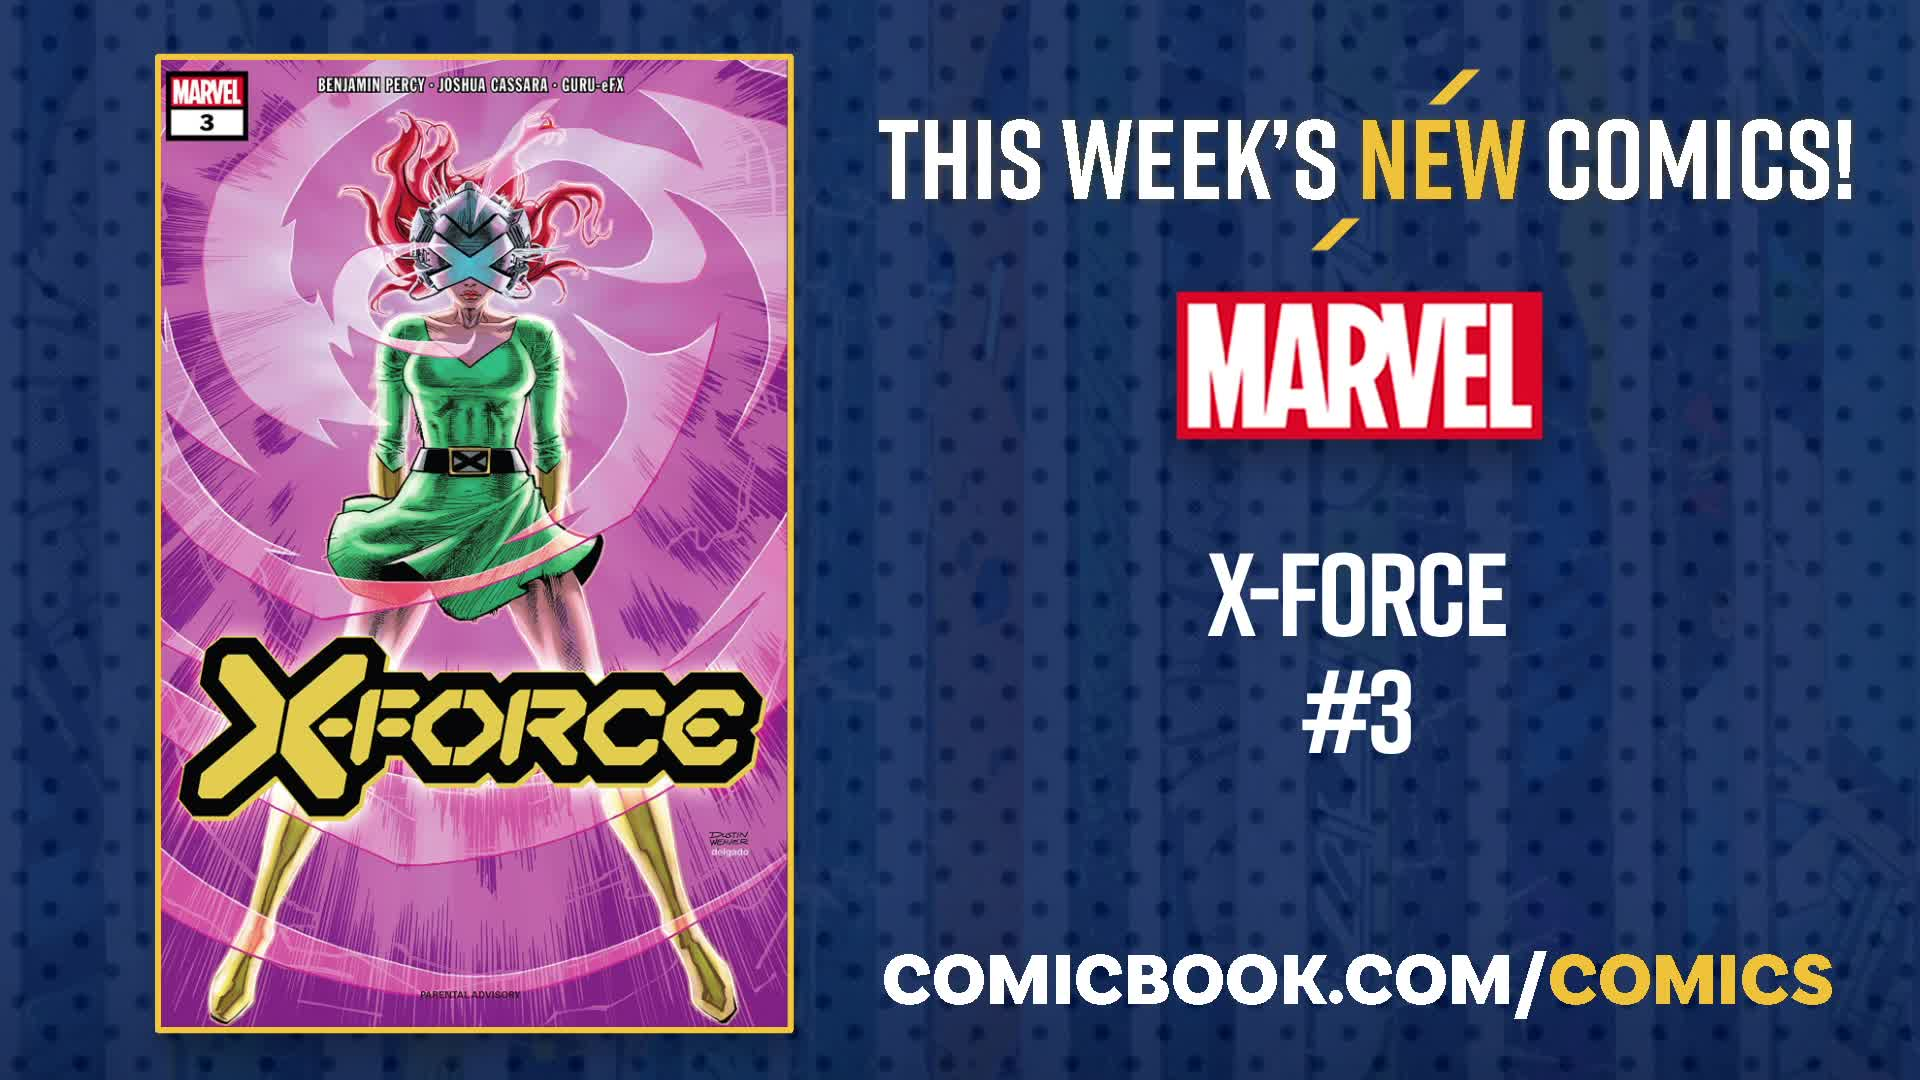 New Comics Out This Week - December 11, 2019 screen capture